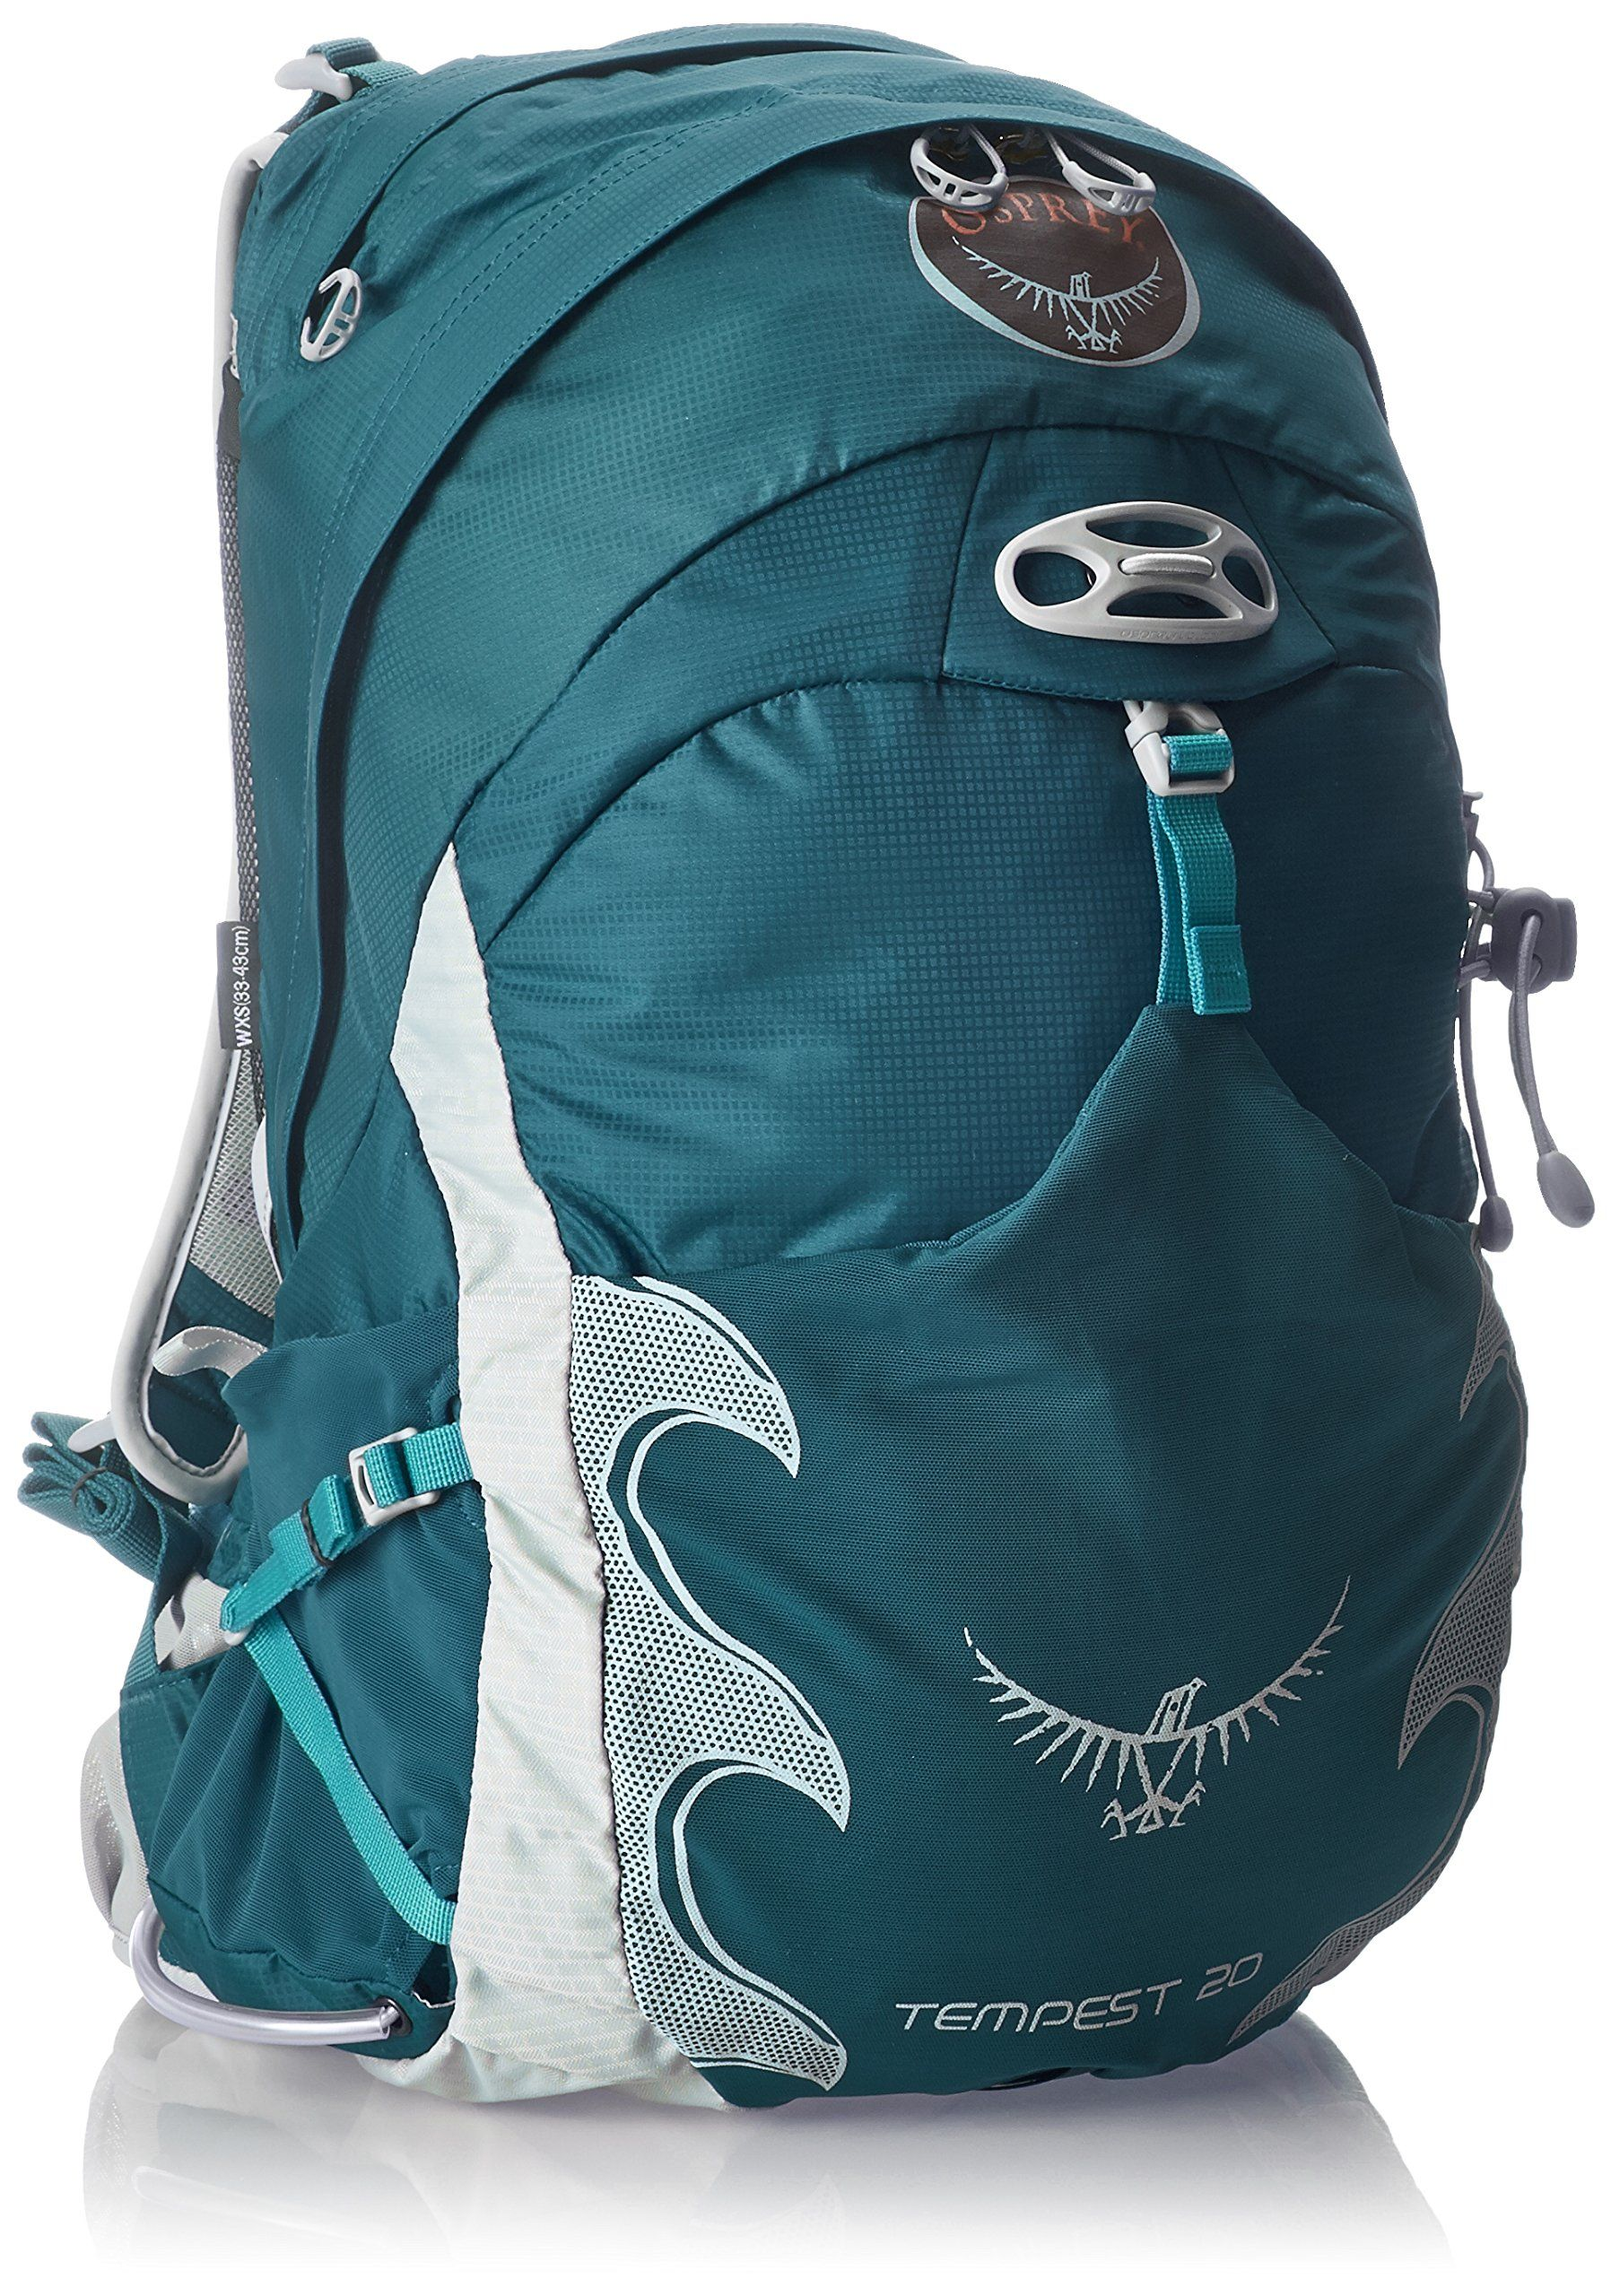 6eaa165695 Amazon.com   Osprey Packs Women s Tempest 20 Backpack   Sports   Outdoors